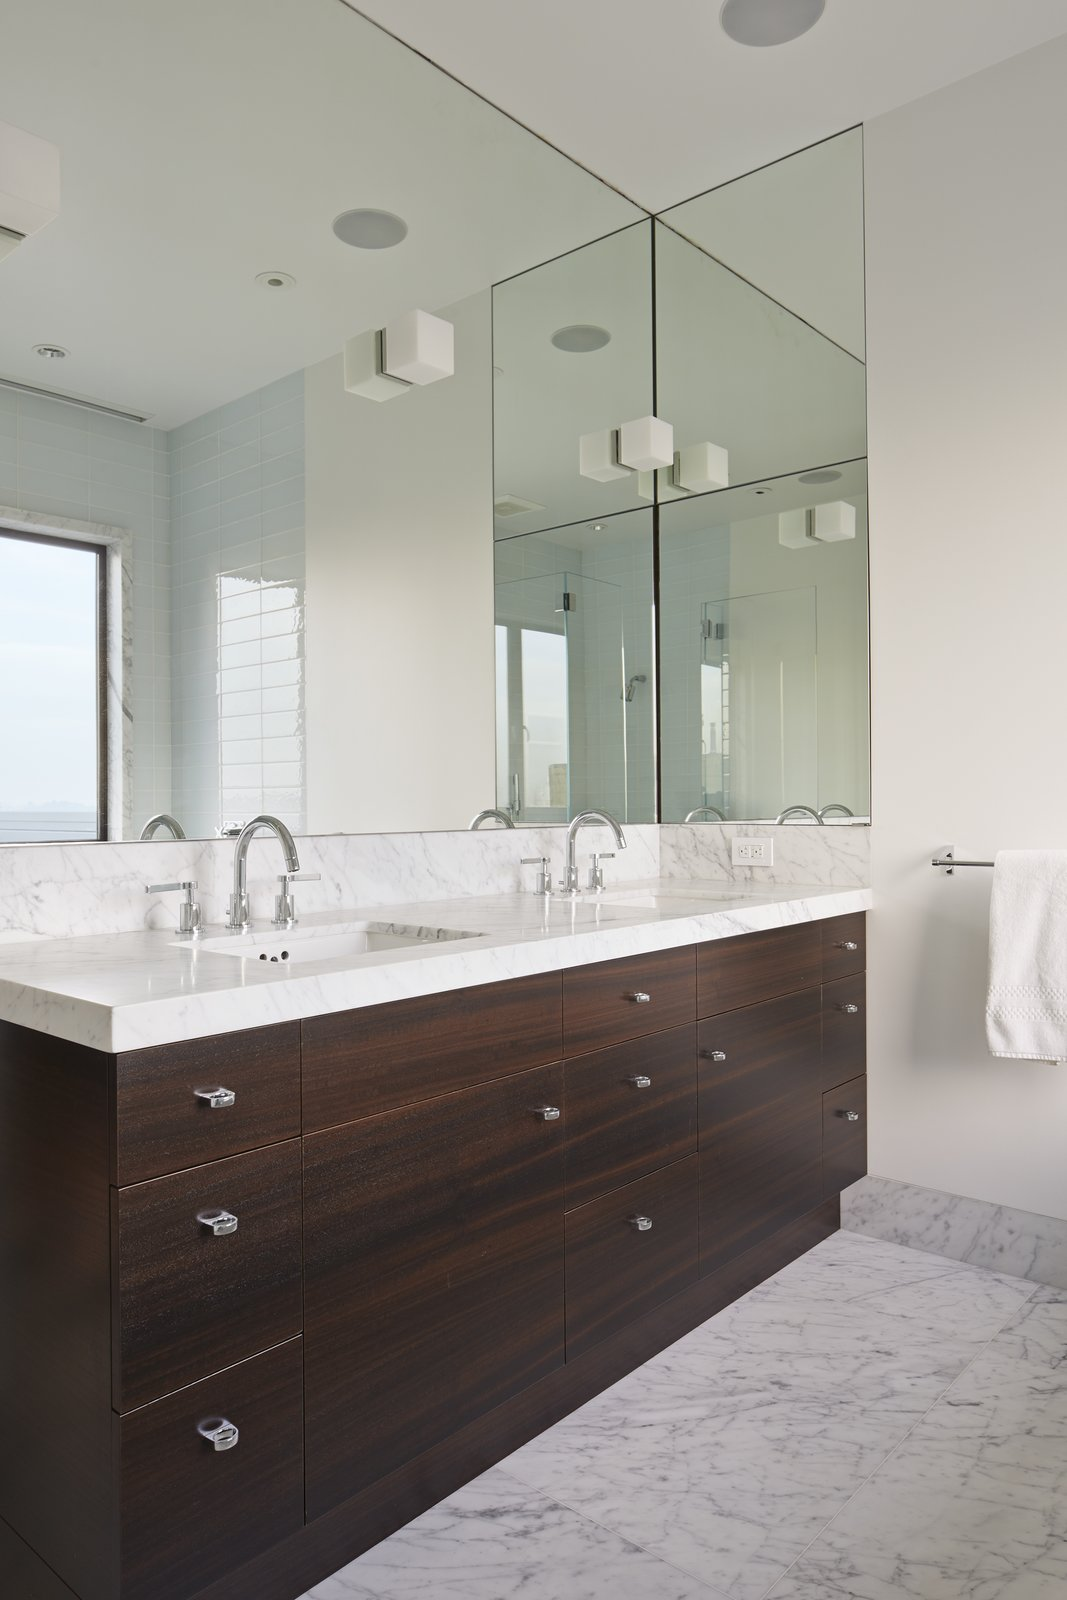 The clean symmetry of the master bathroom is enhanced by Ann Sacks ceramic Savoy tiles and Lefroy Brooks fixtures. Tagged: Bath Room, Marble Counter, Marble Floor, Undermount Sink, and Accent Lighting.  Noe Residence by Caroline Wallis